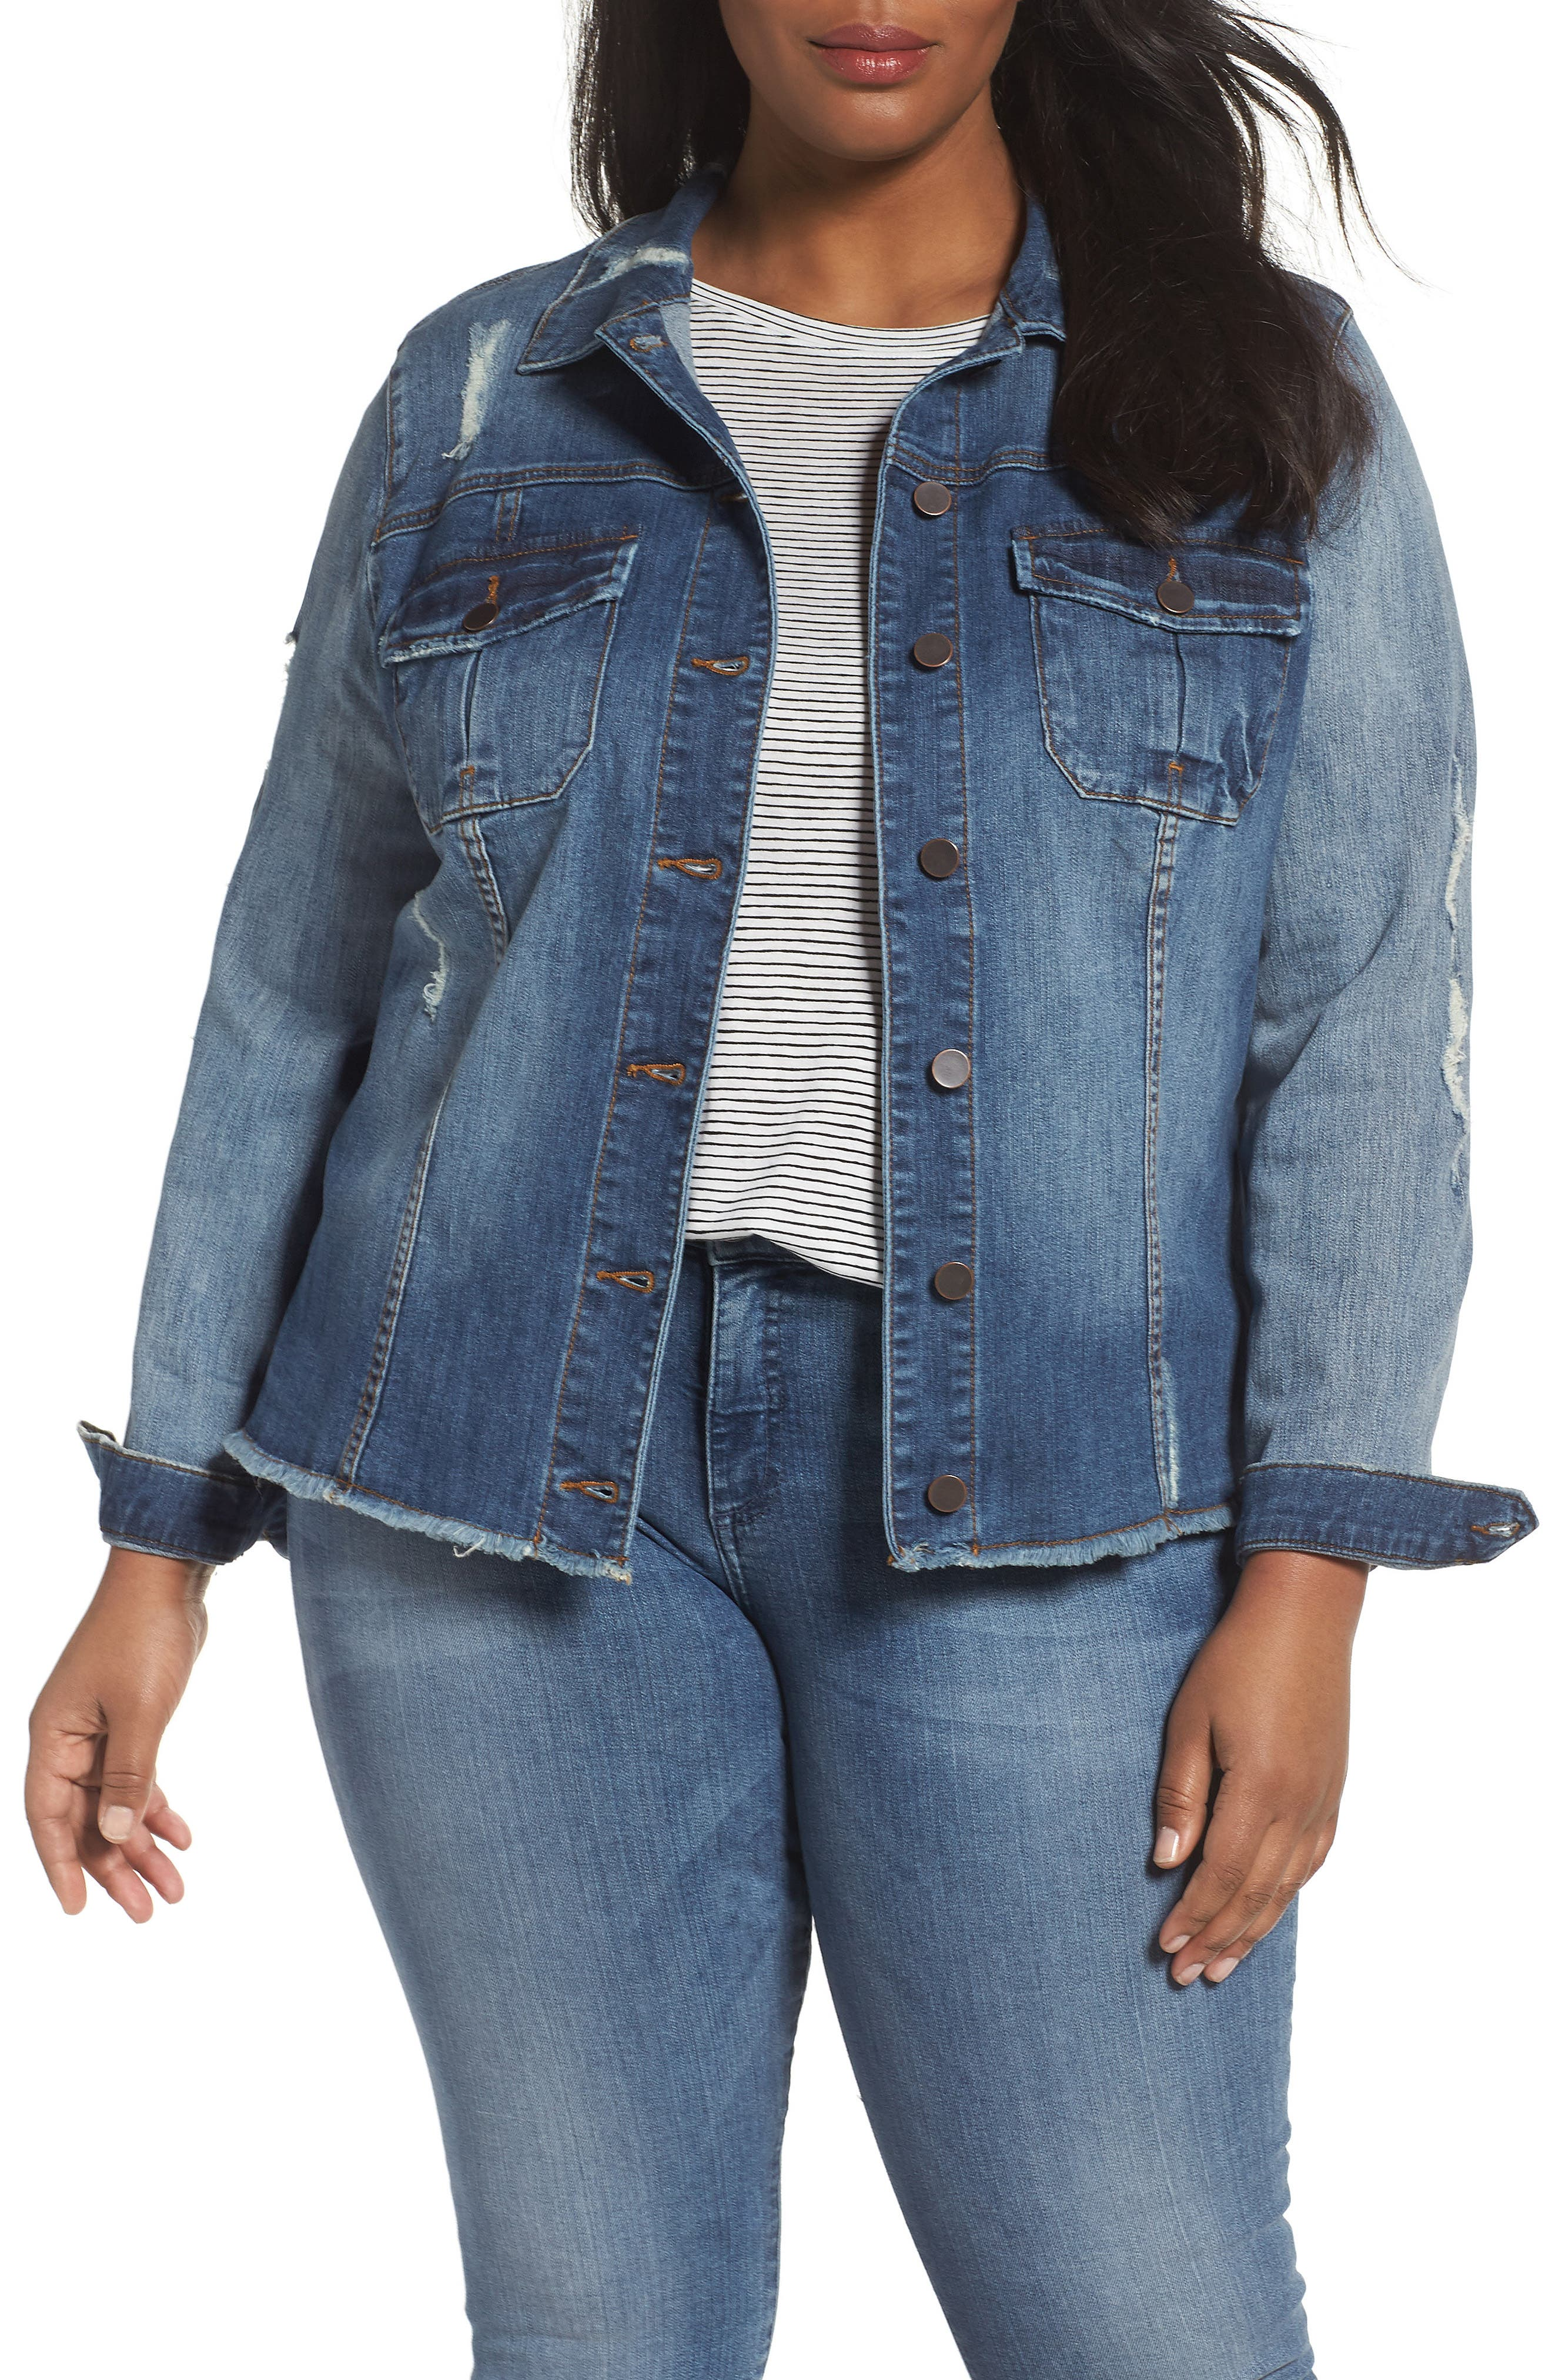 KUT FROM THE KLOTH Distressed Denim Jacket